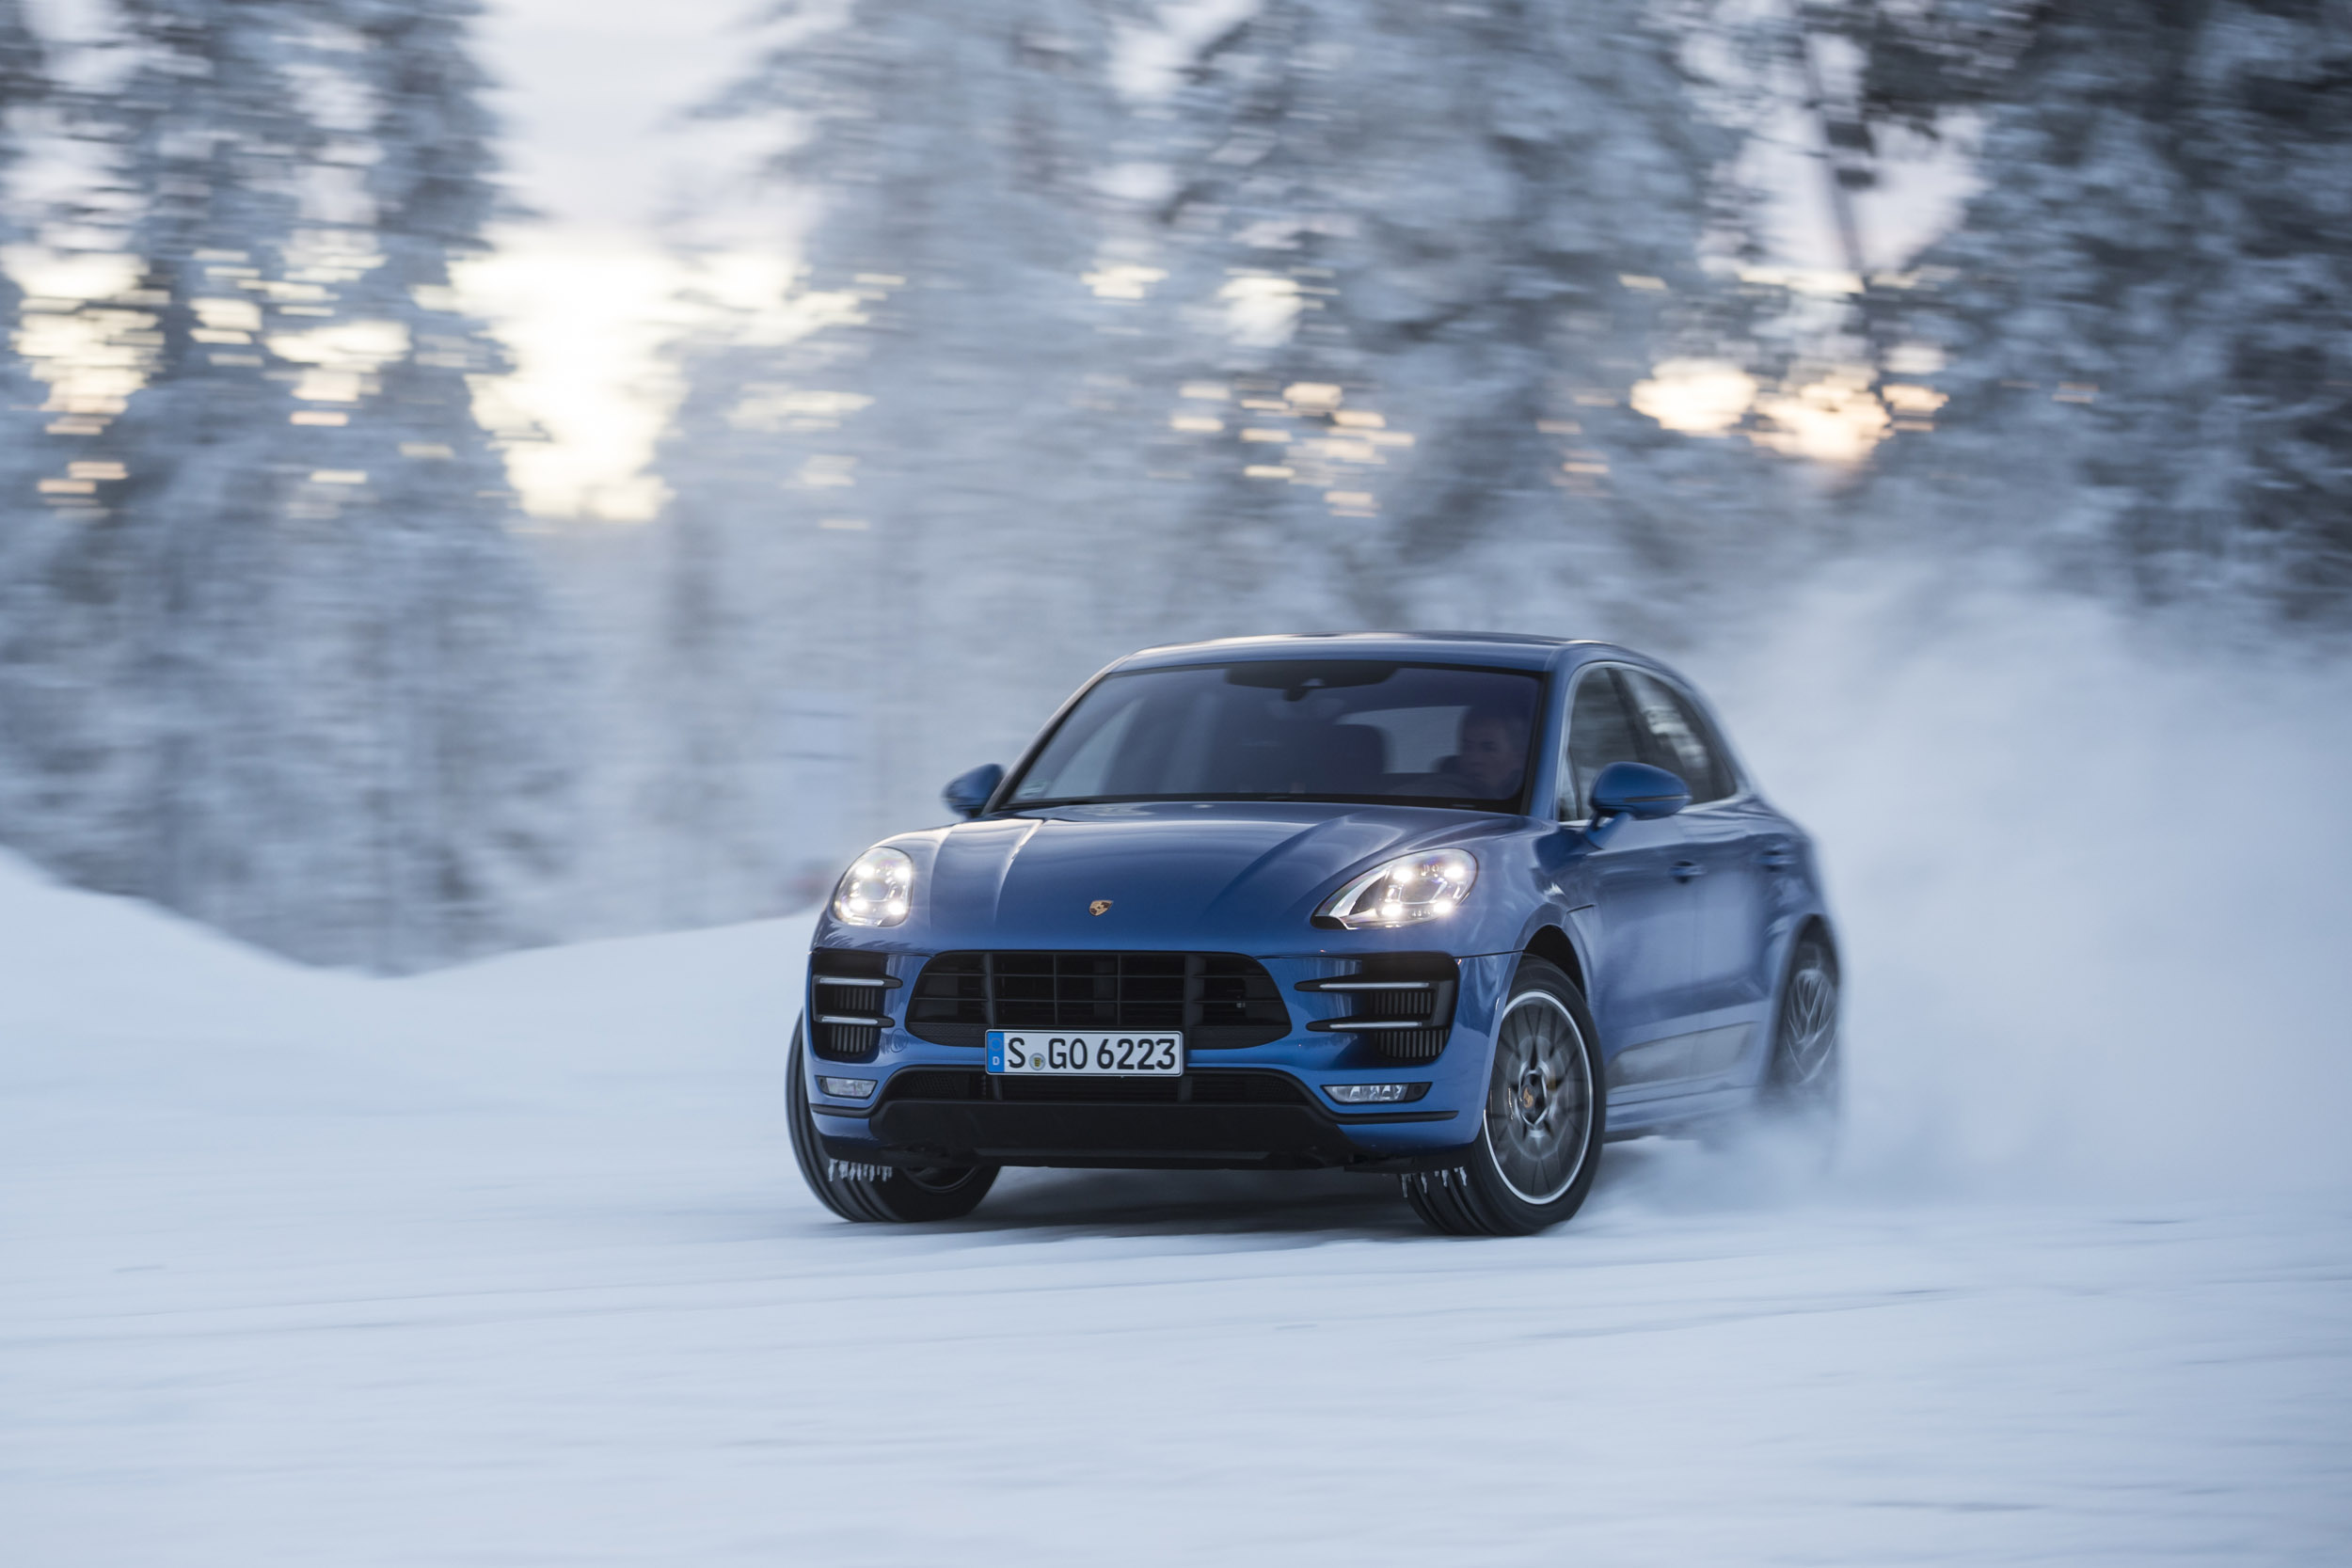 Porsche Macan Turbo Performance Package Review Rapid Suv Gets Even Quicker Evo